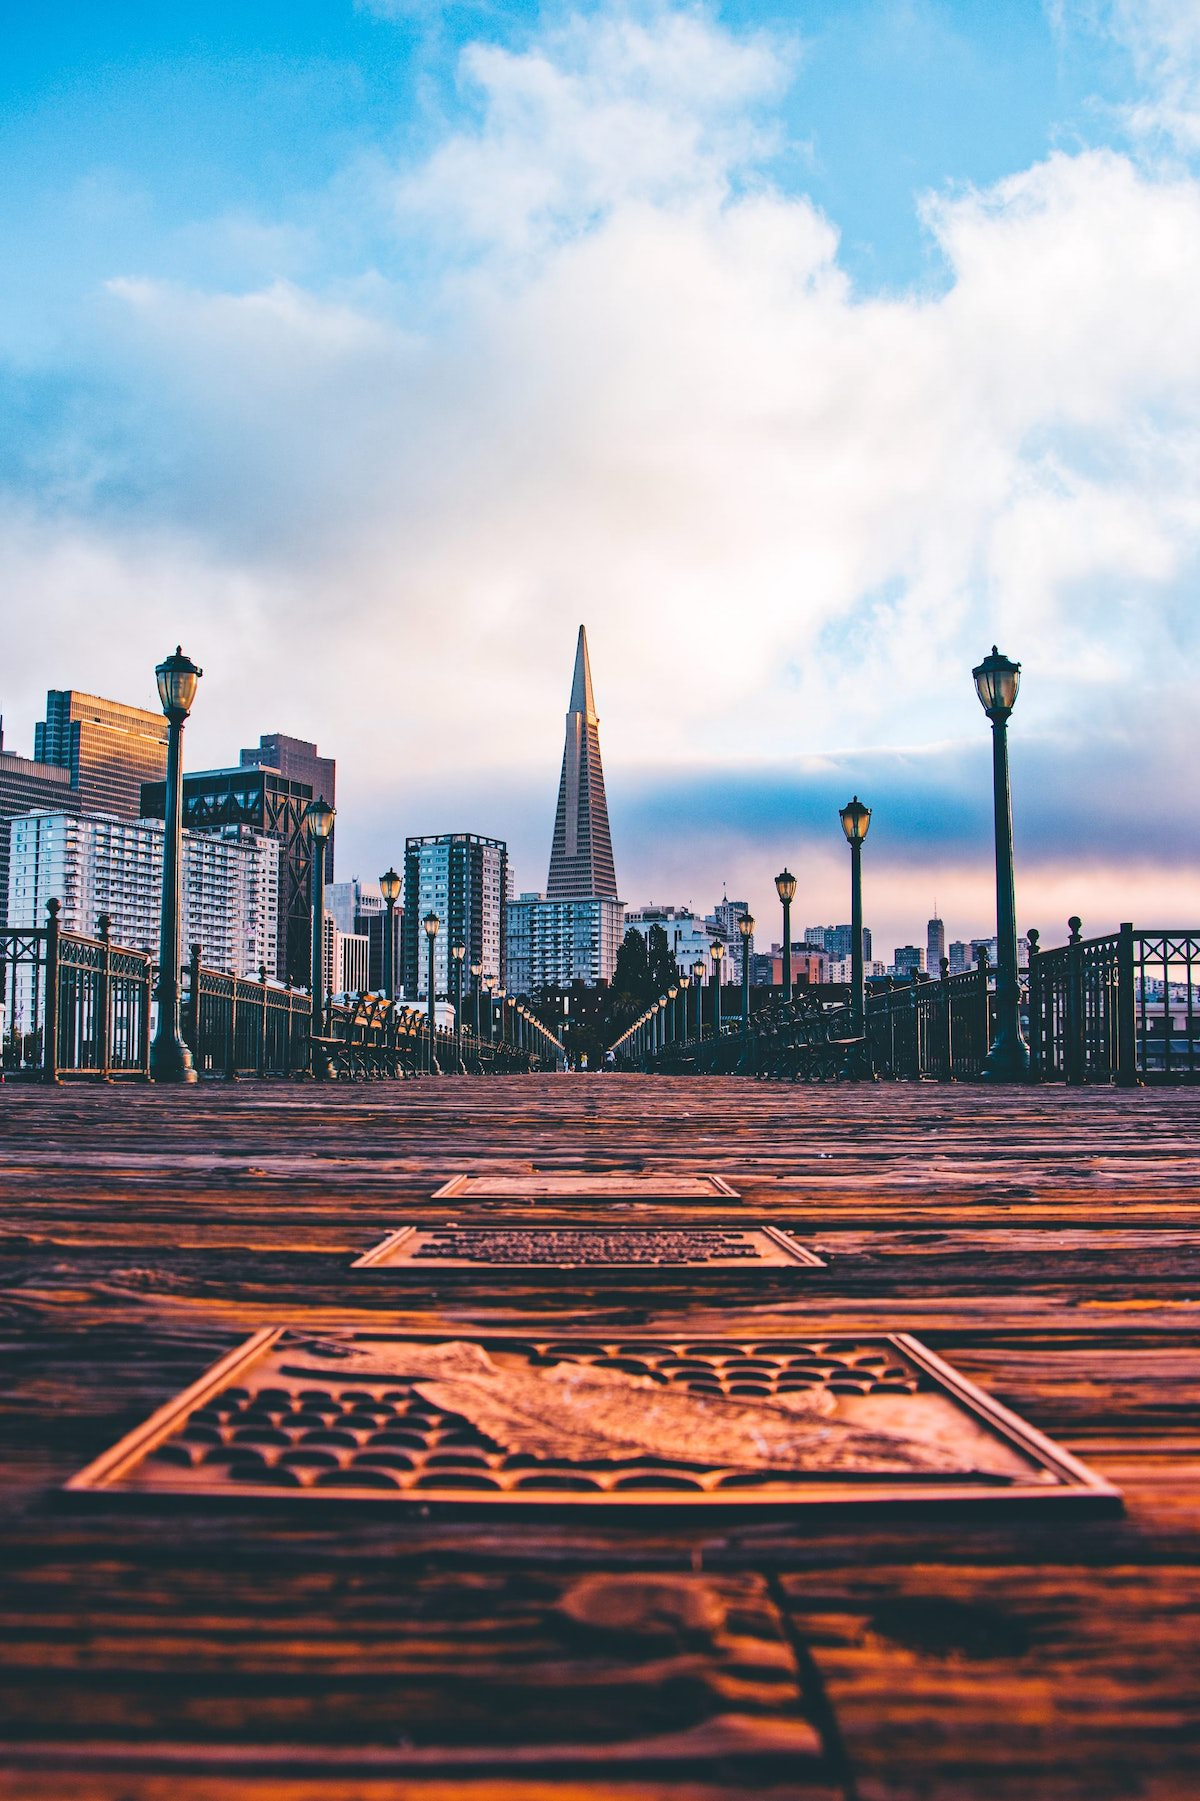 Best Photography Spots San Francisco California for any photographer